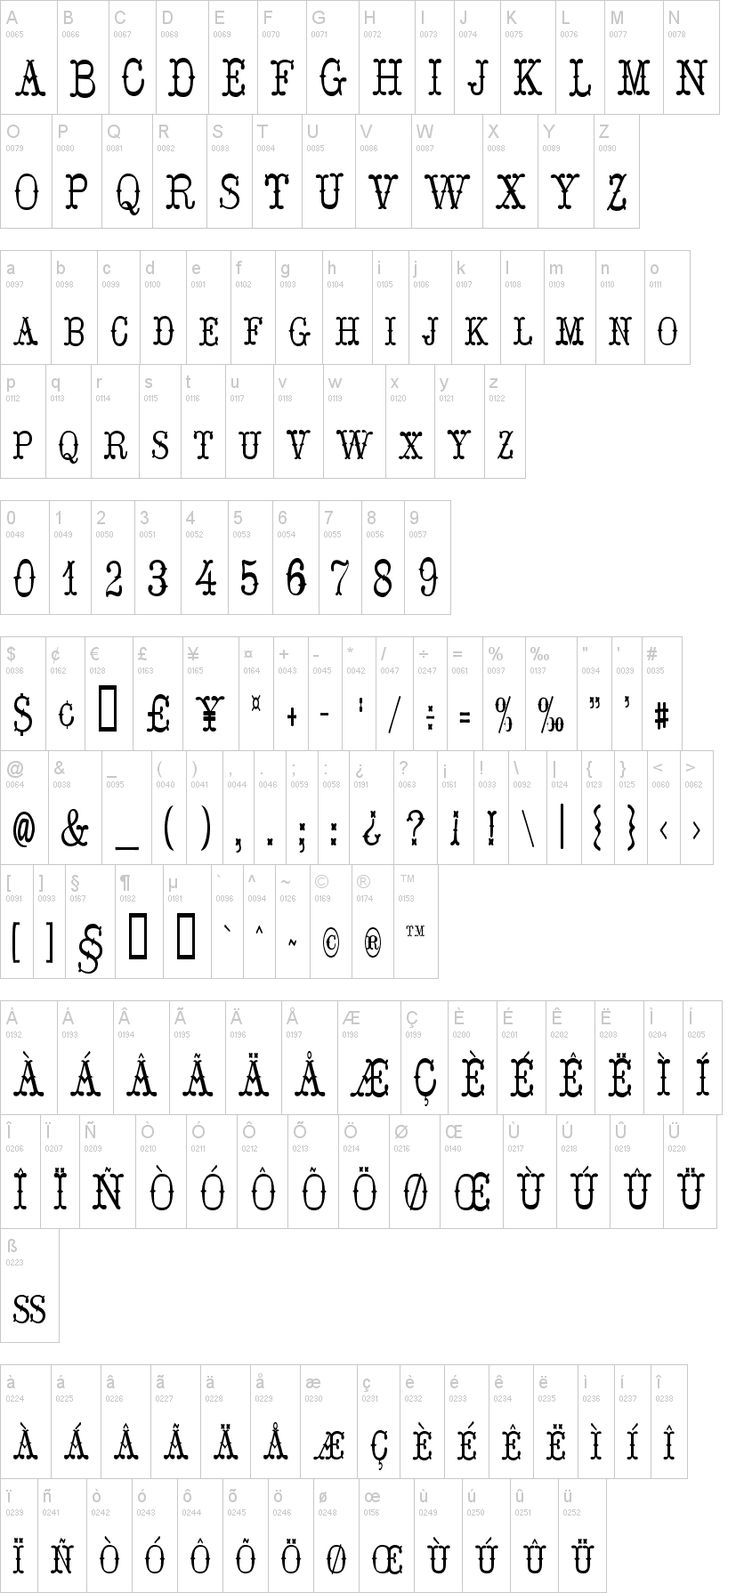 Hoedown Font Circus font, Free commercial